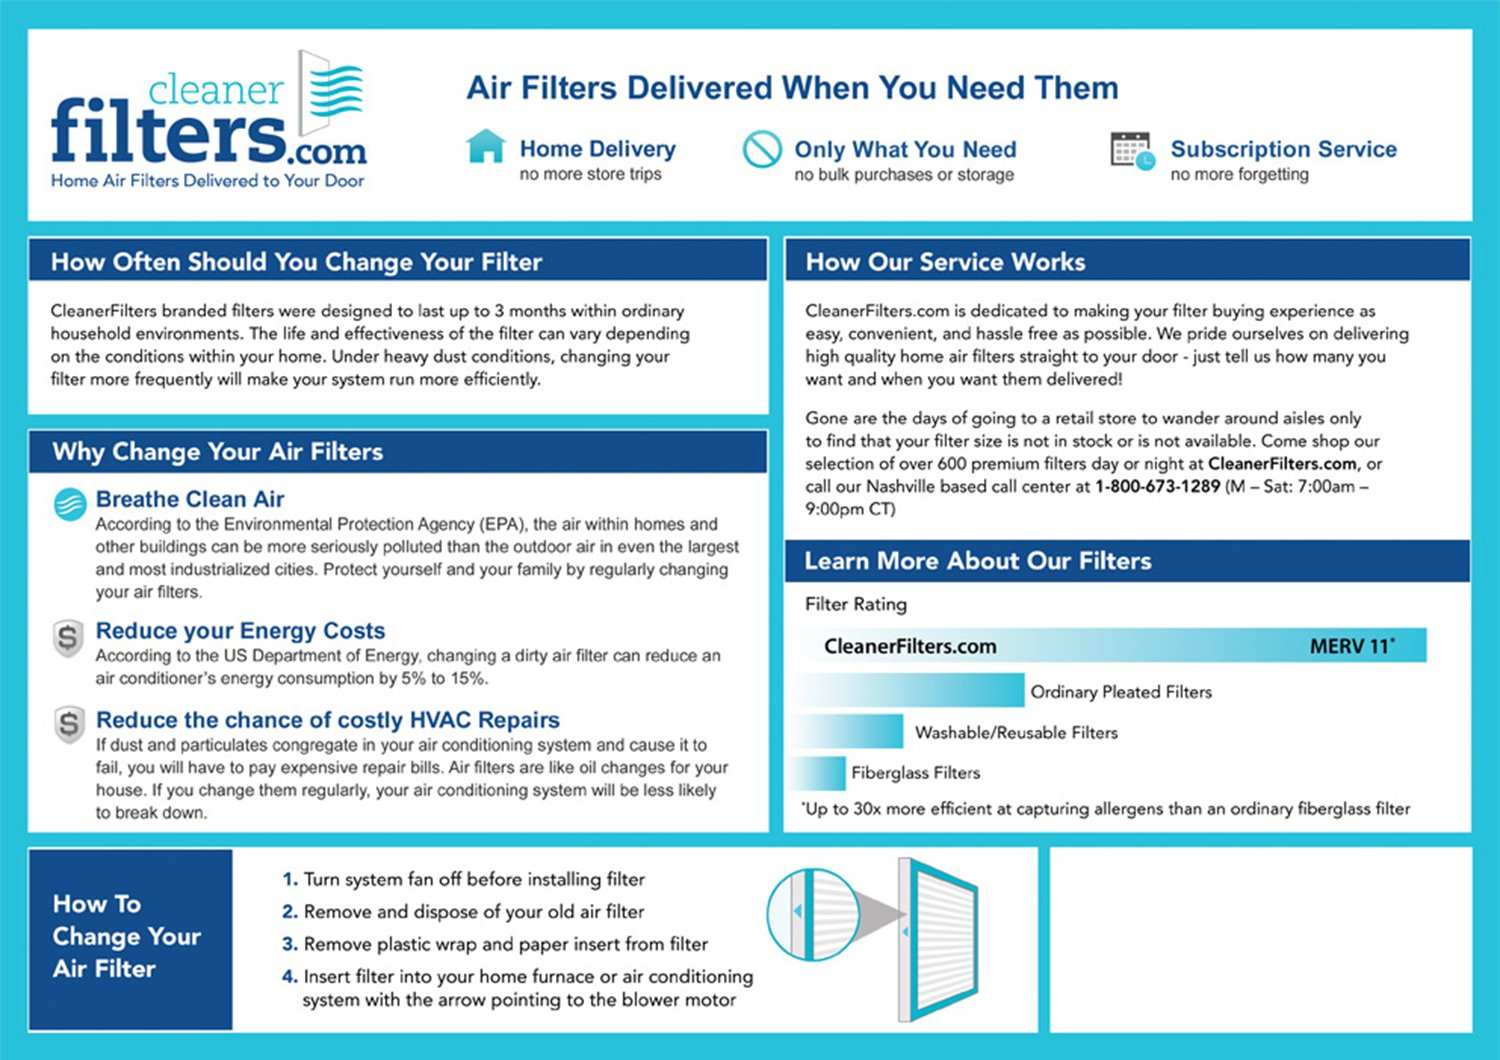 amazoncom cleaner filters 14x14x1 air filter pleated high efficiency allergy furnace filters for home or office with merv 11 rating 1 pack home - Air Filters Delivered